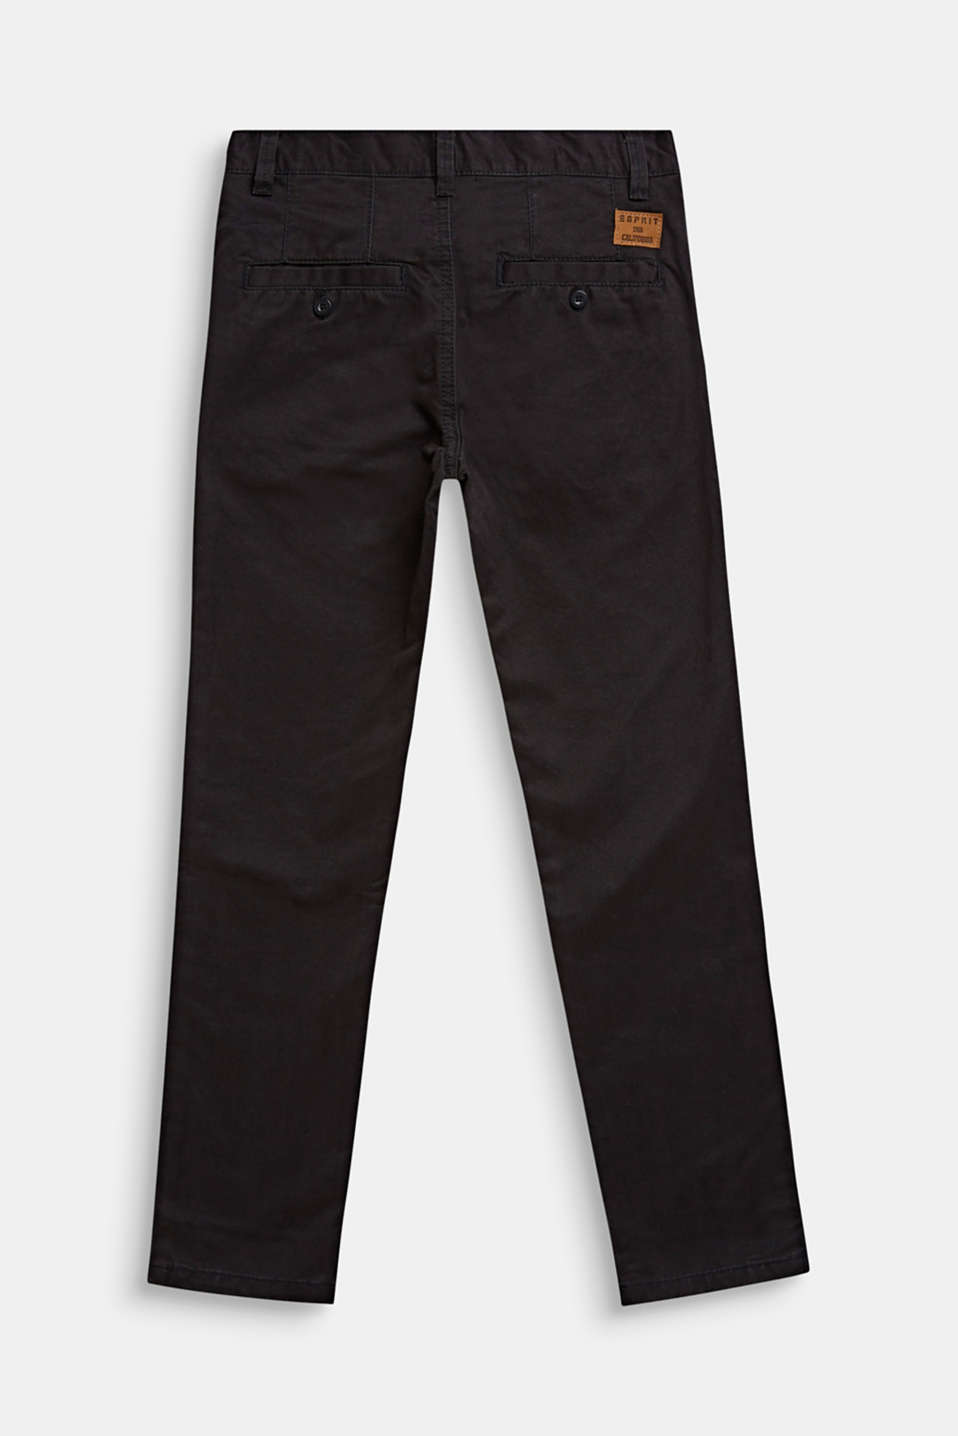 Chinos with adjustable waistband, 100% cotton, LCANTHRACITE, detail image number 1